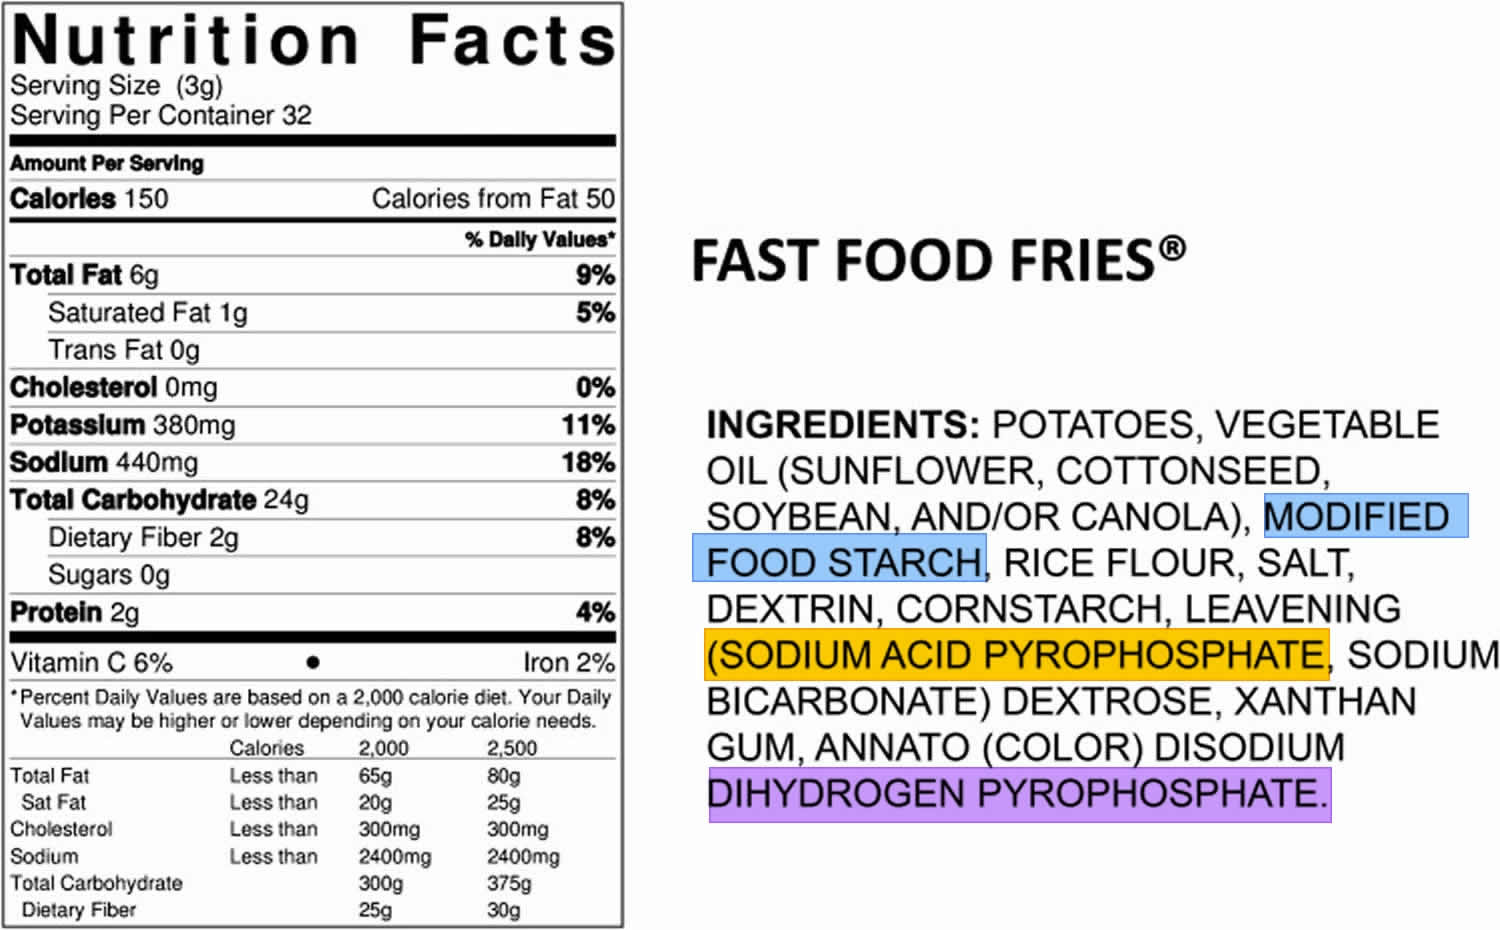 Food ingredients list showing 3 phosphate additives